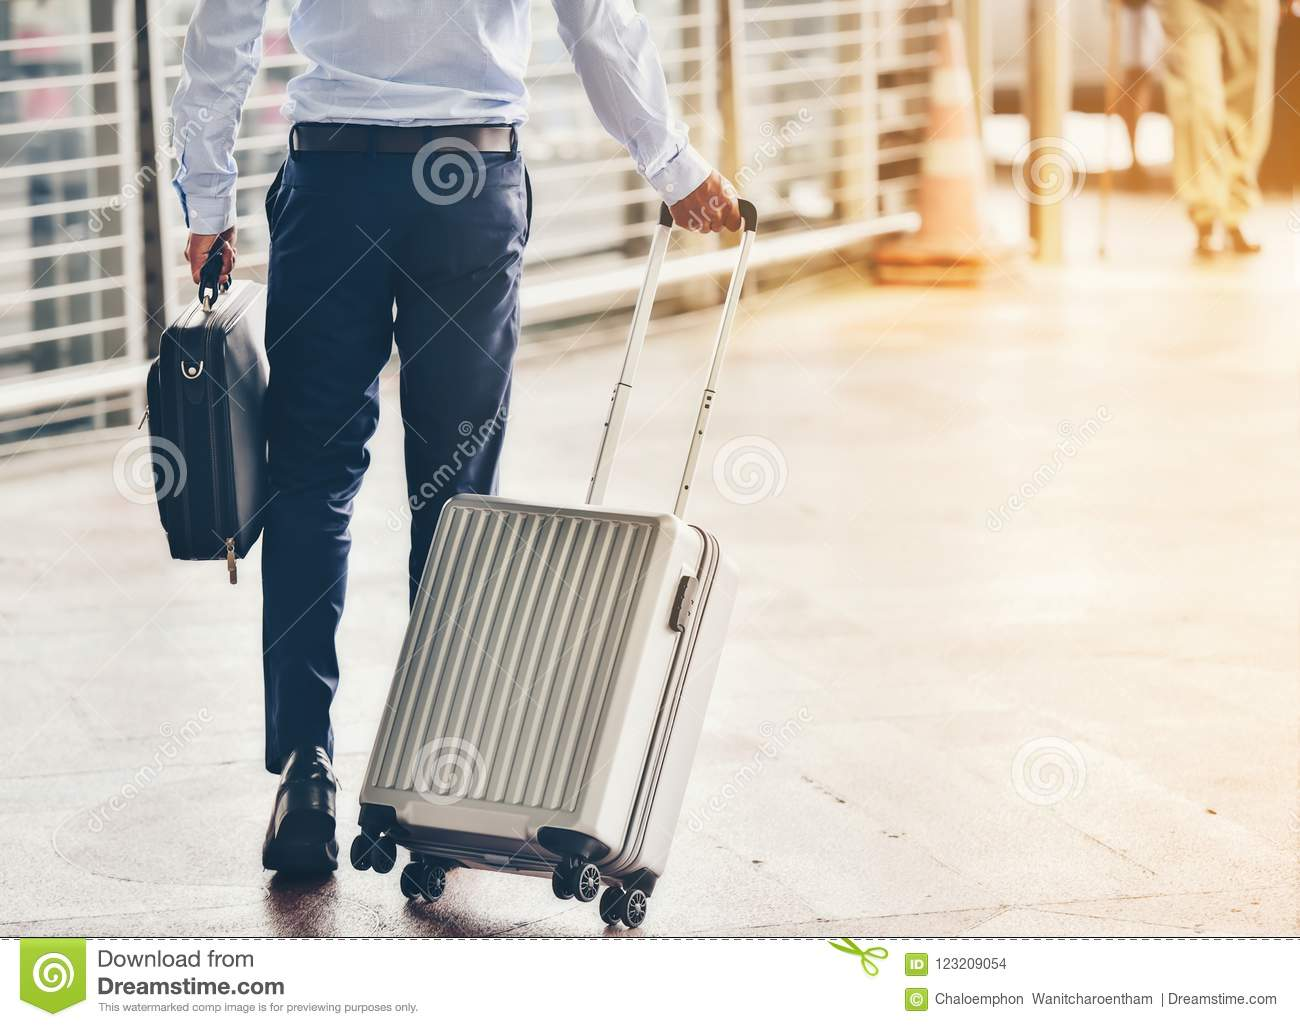 woman leaving with luggage - 900×600